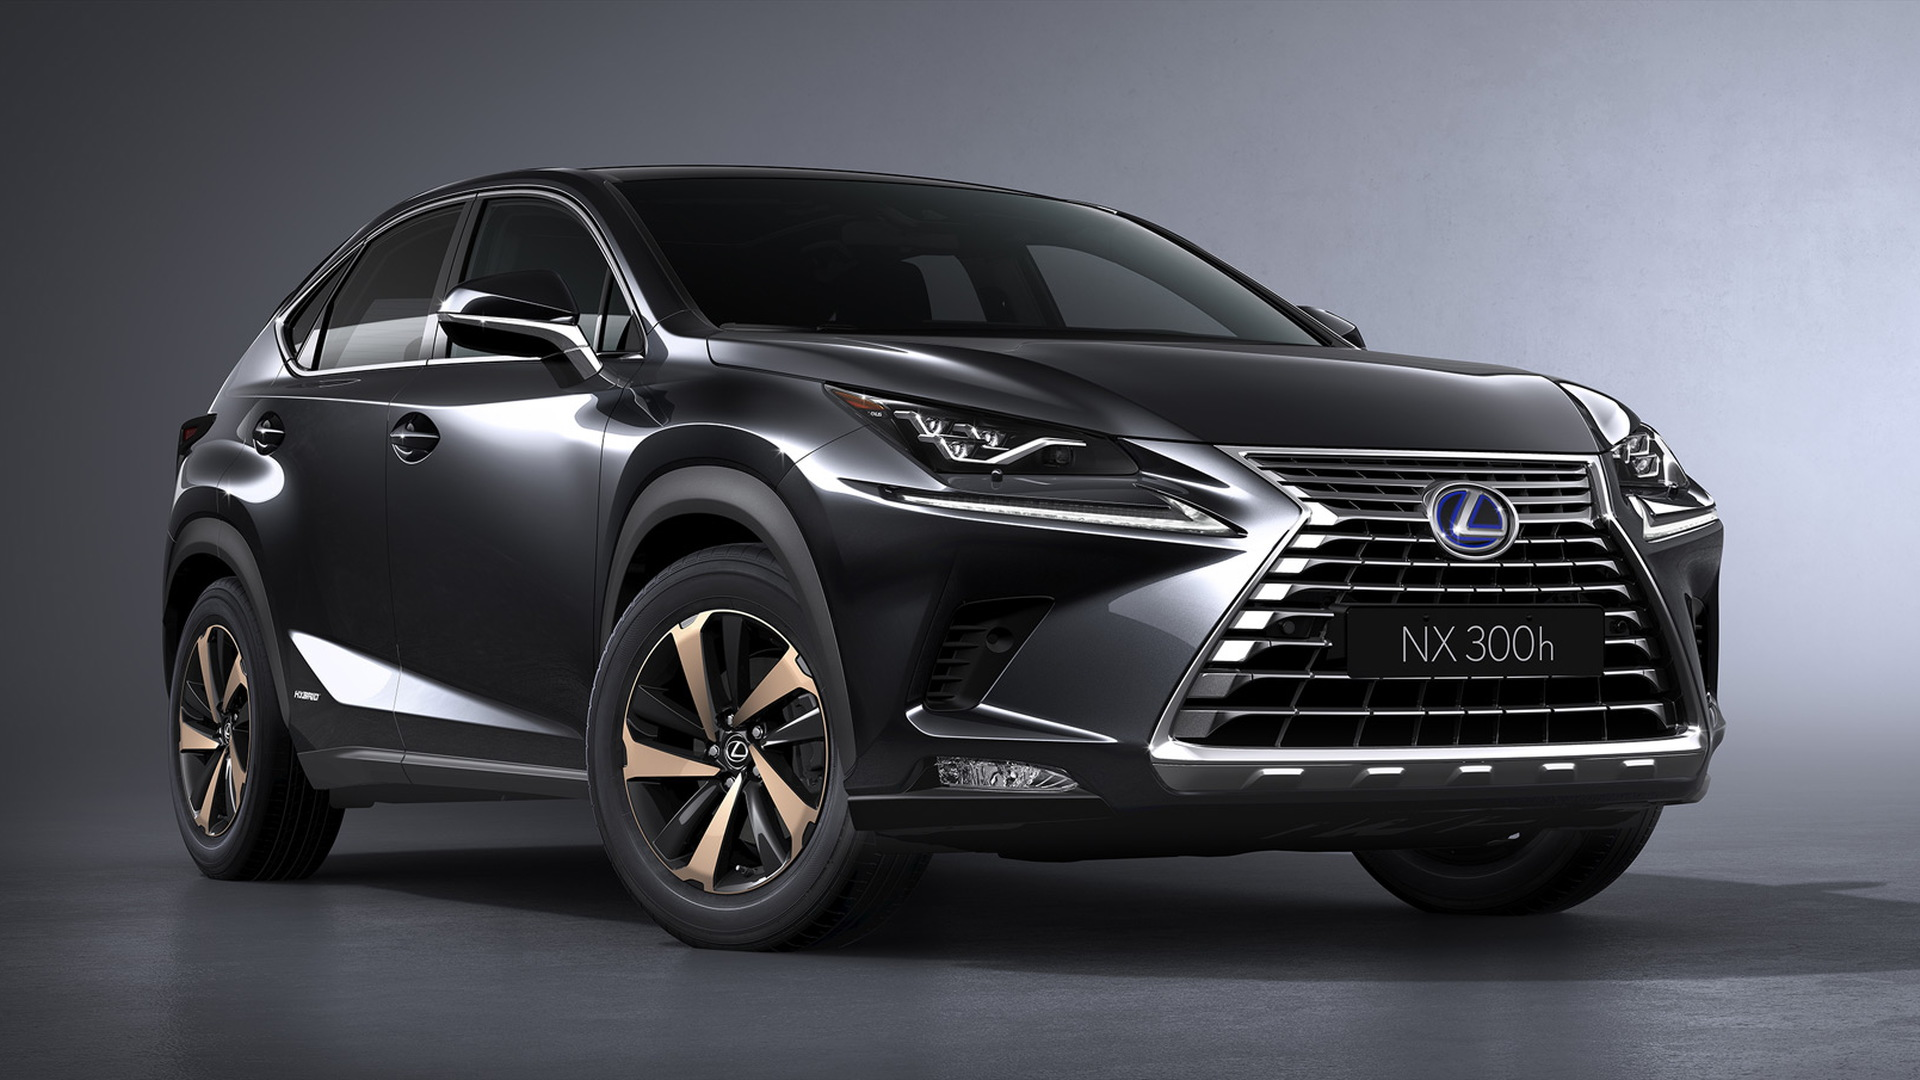 Lexus Nx Hybrid Price >> 2018 Lexus Nx Hybrid Gets More Safety Equipment At Lower Price